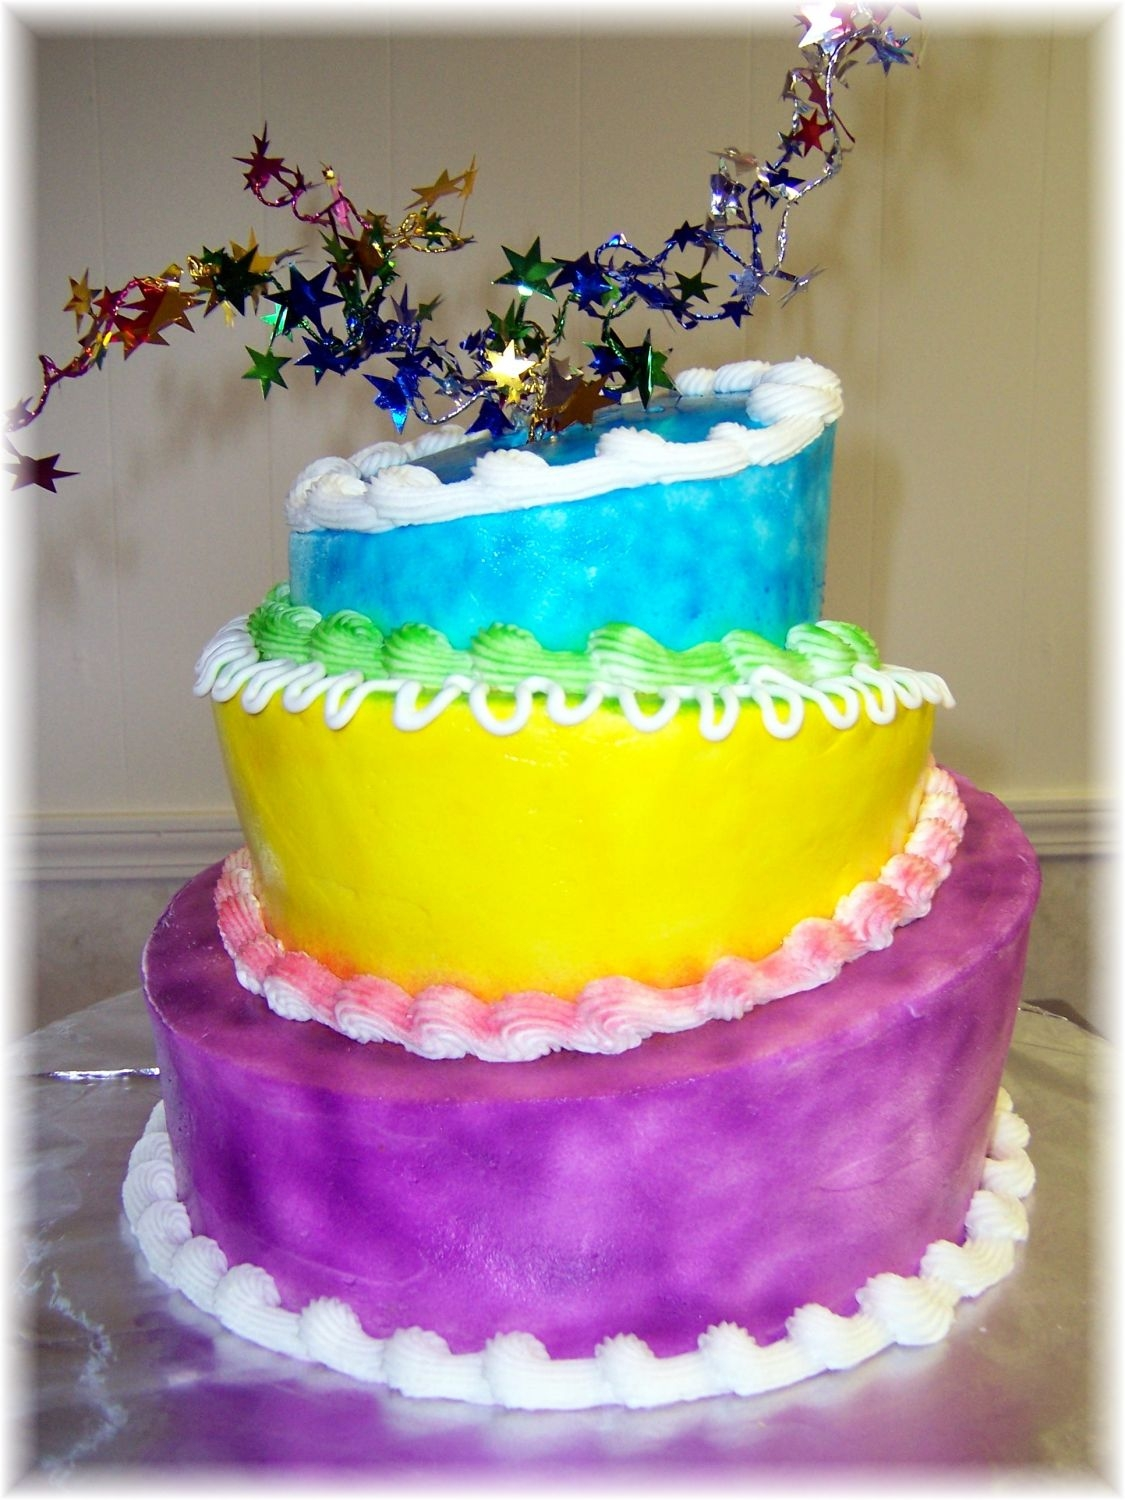 Celebrate Mad Hatter Style buttercream cake with airbrushed color